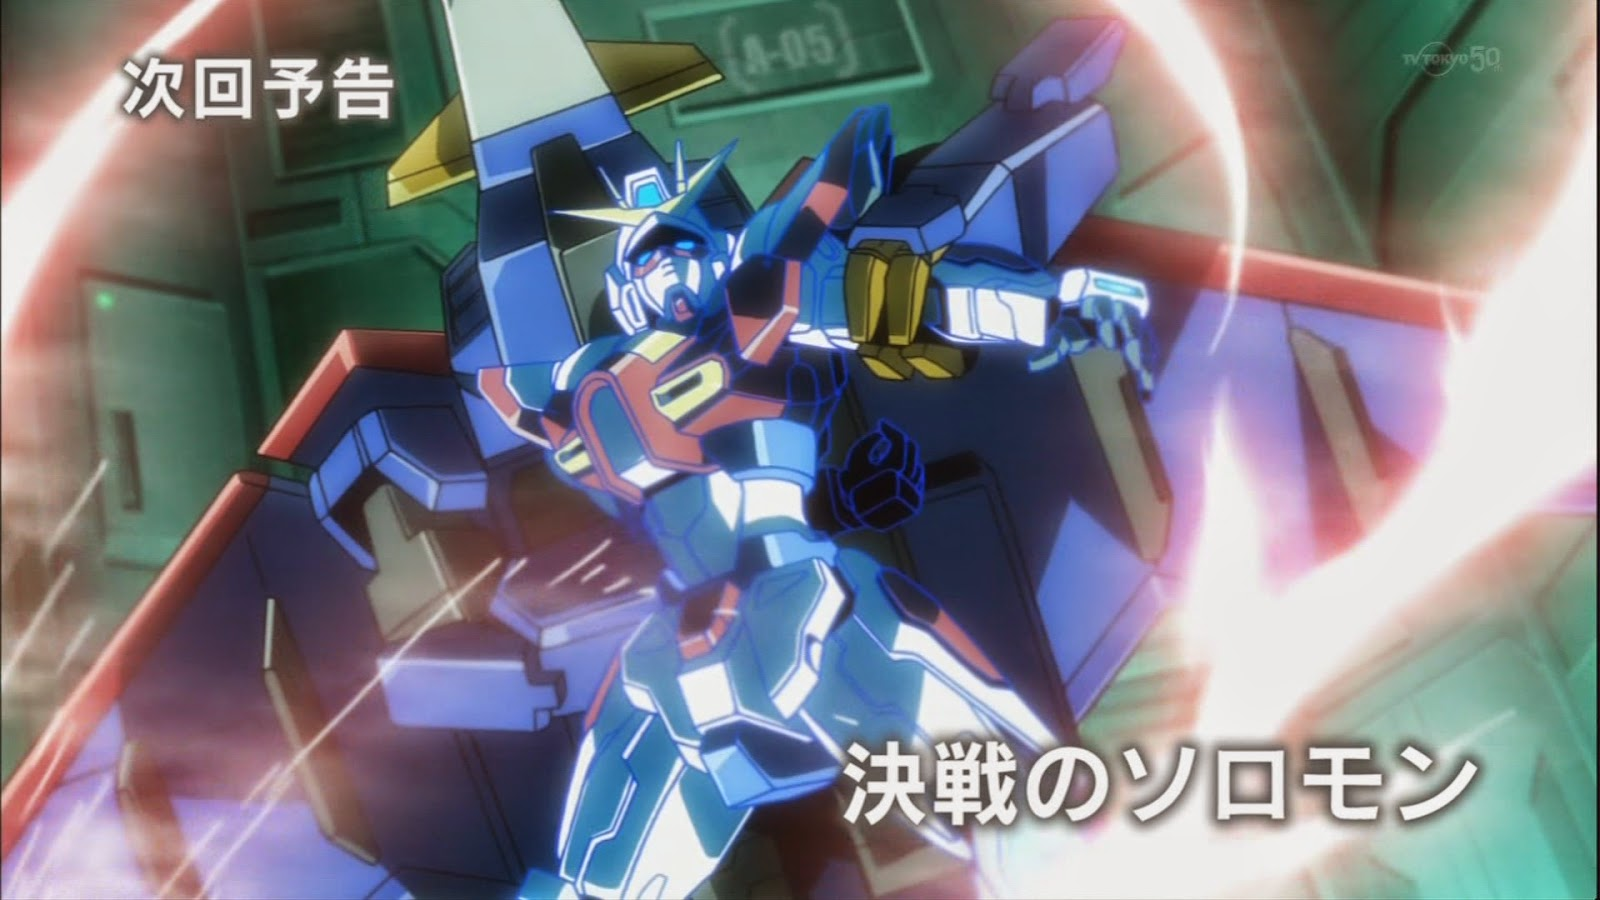 Gundam Build Fighters Try Build Burning Gundam Wallpaper Gundam Build Fighters Try